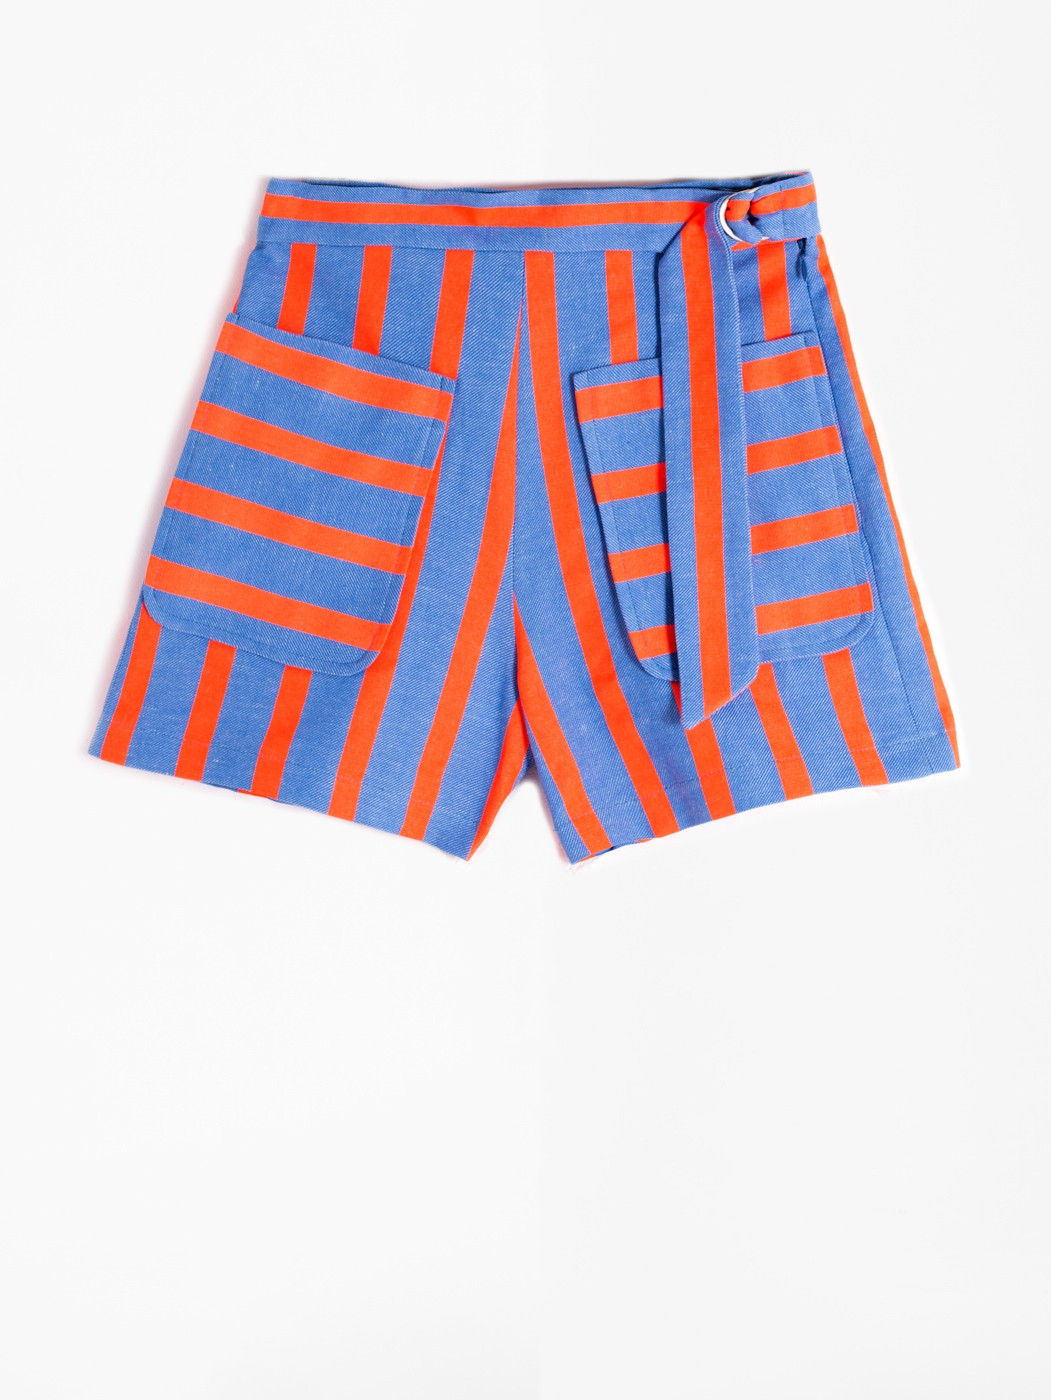 AVALON SHORTS NAMIB FLUOR STRIPE